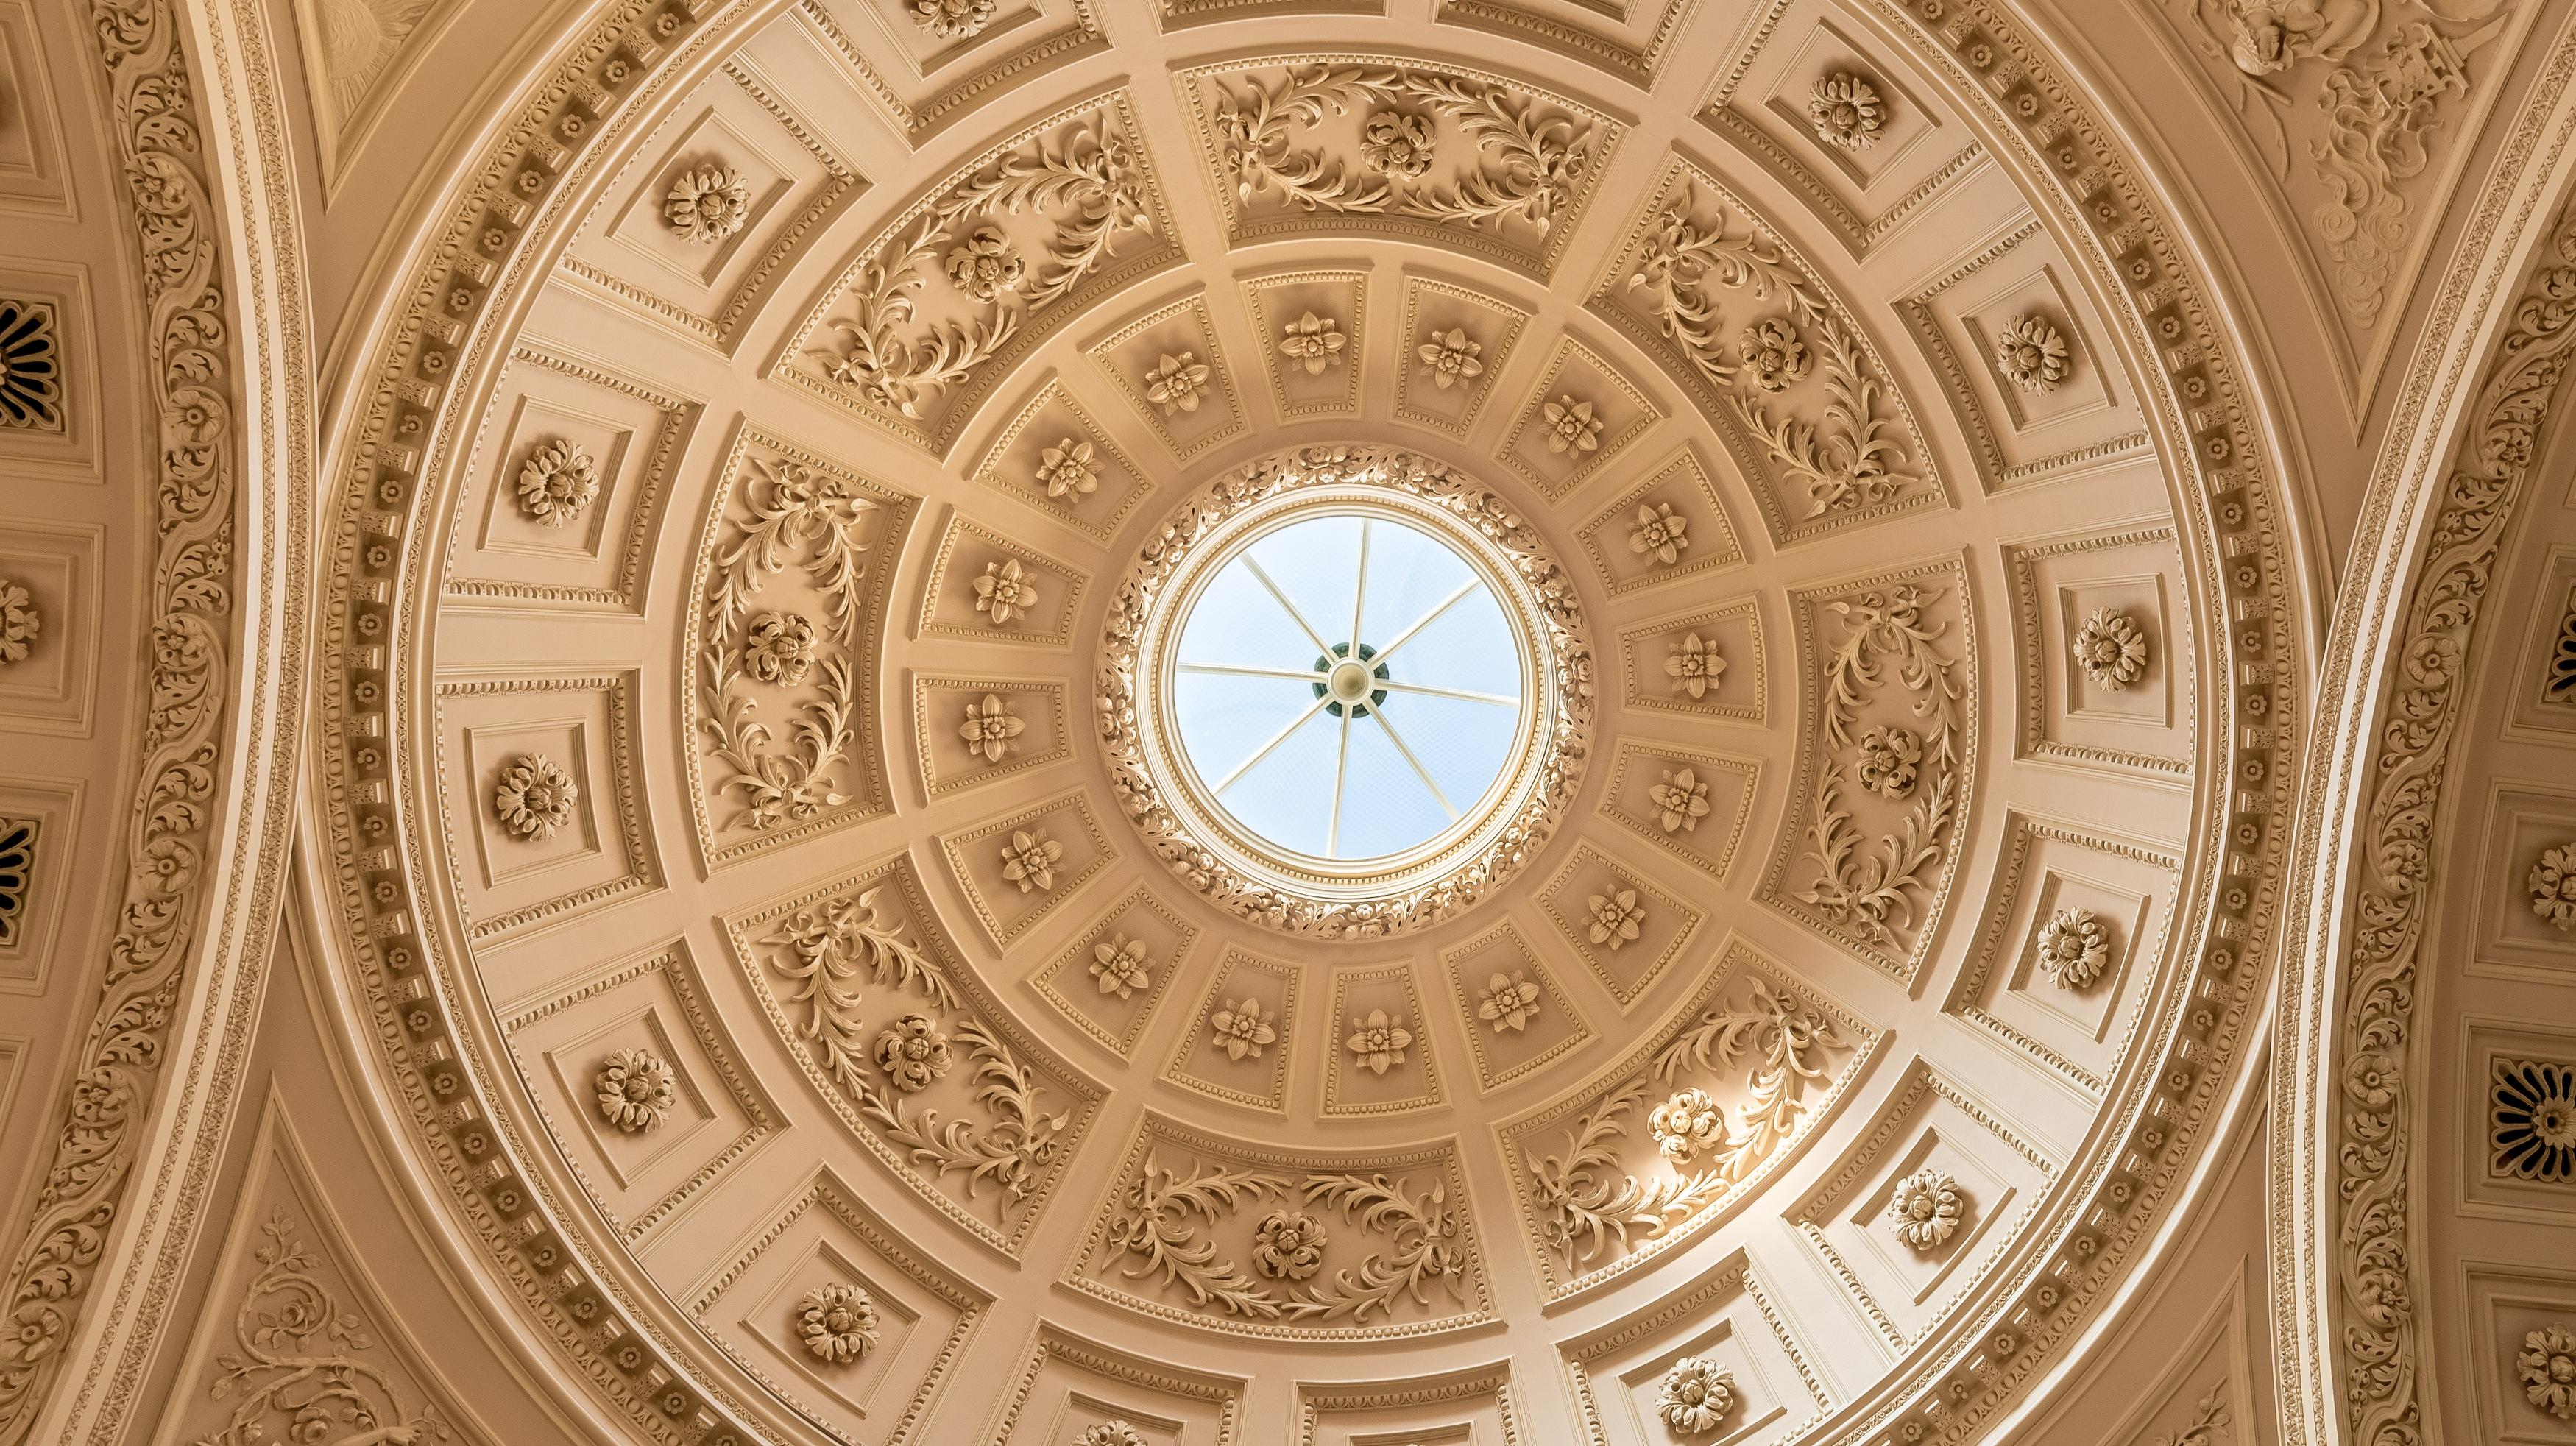 Image: Domed ceiling